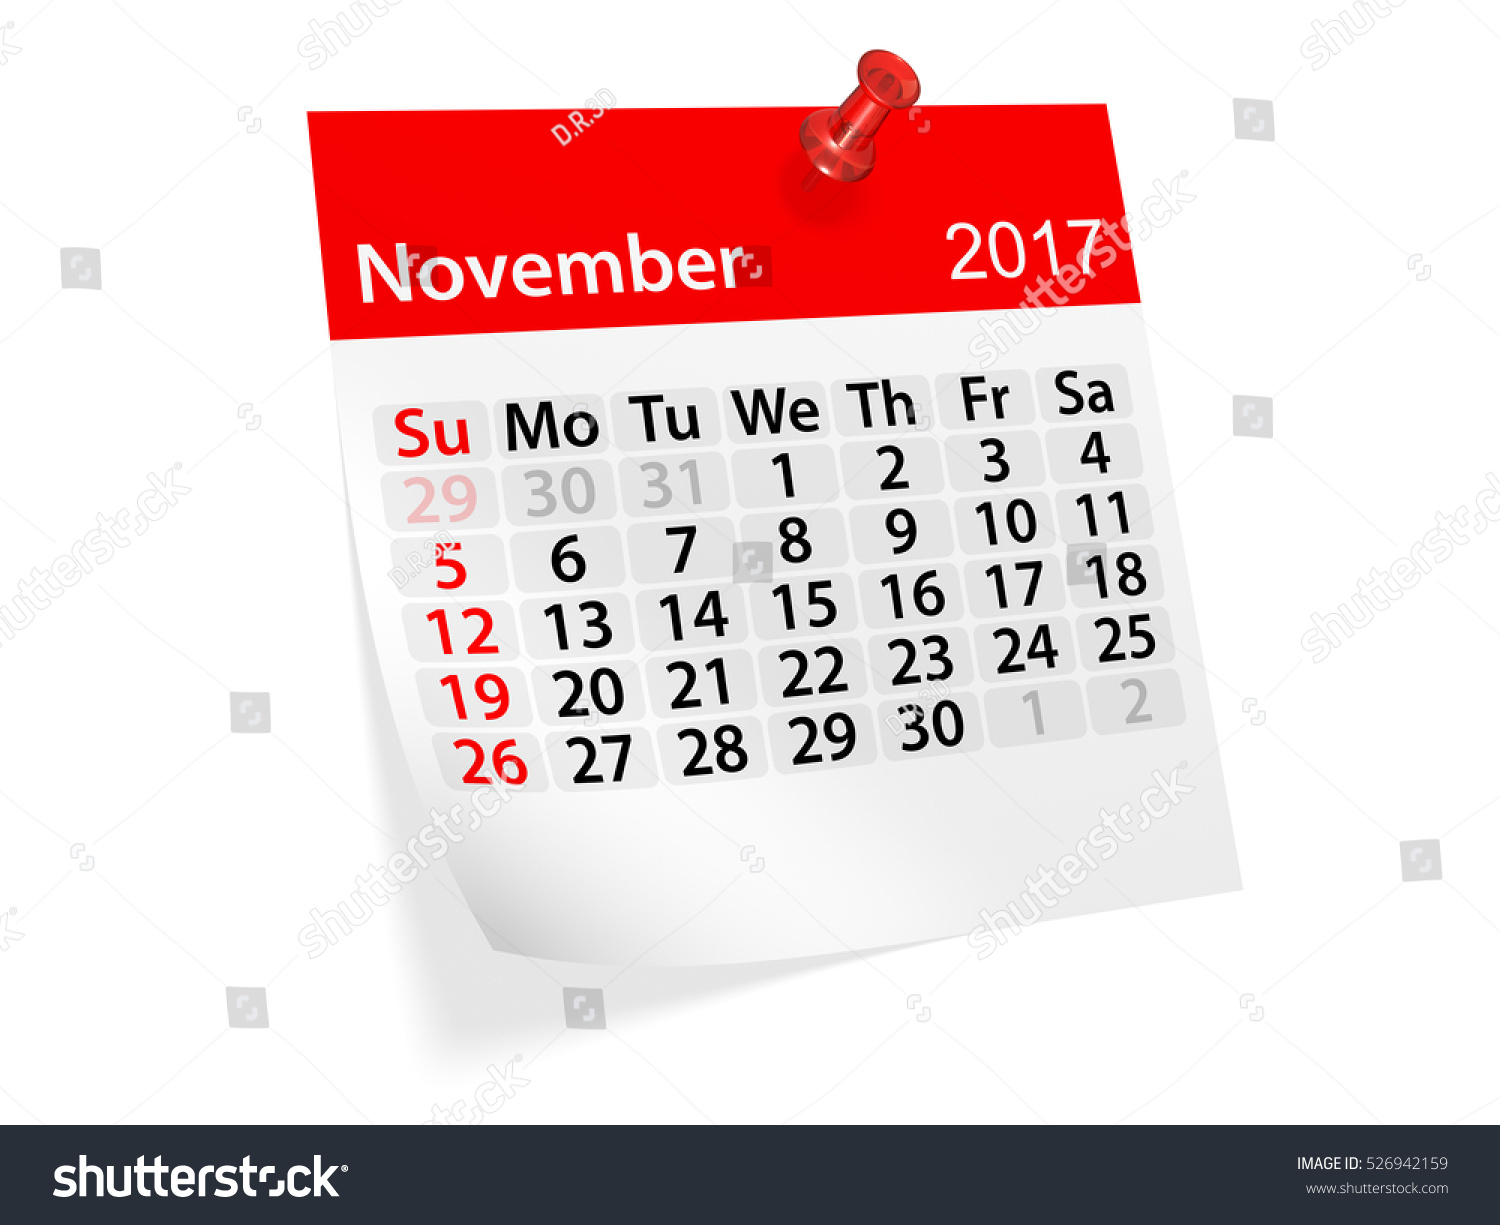 Calendar Illustration Jobs : Colorful pinned note monthly calendar november stock